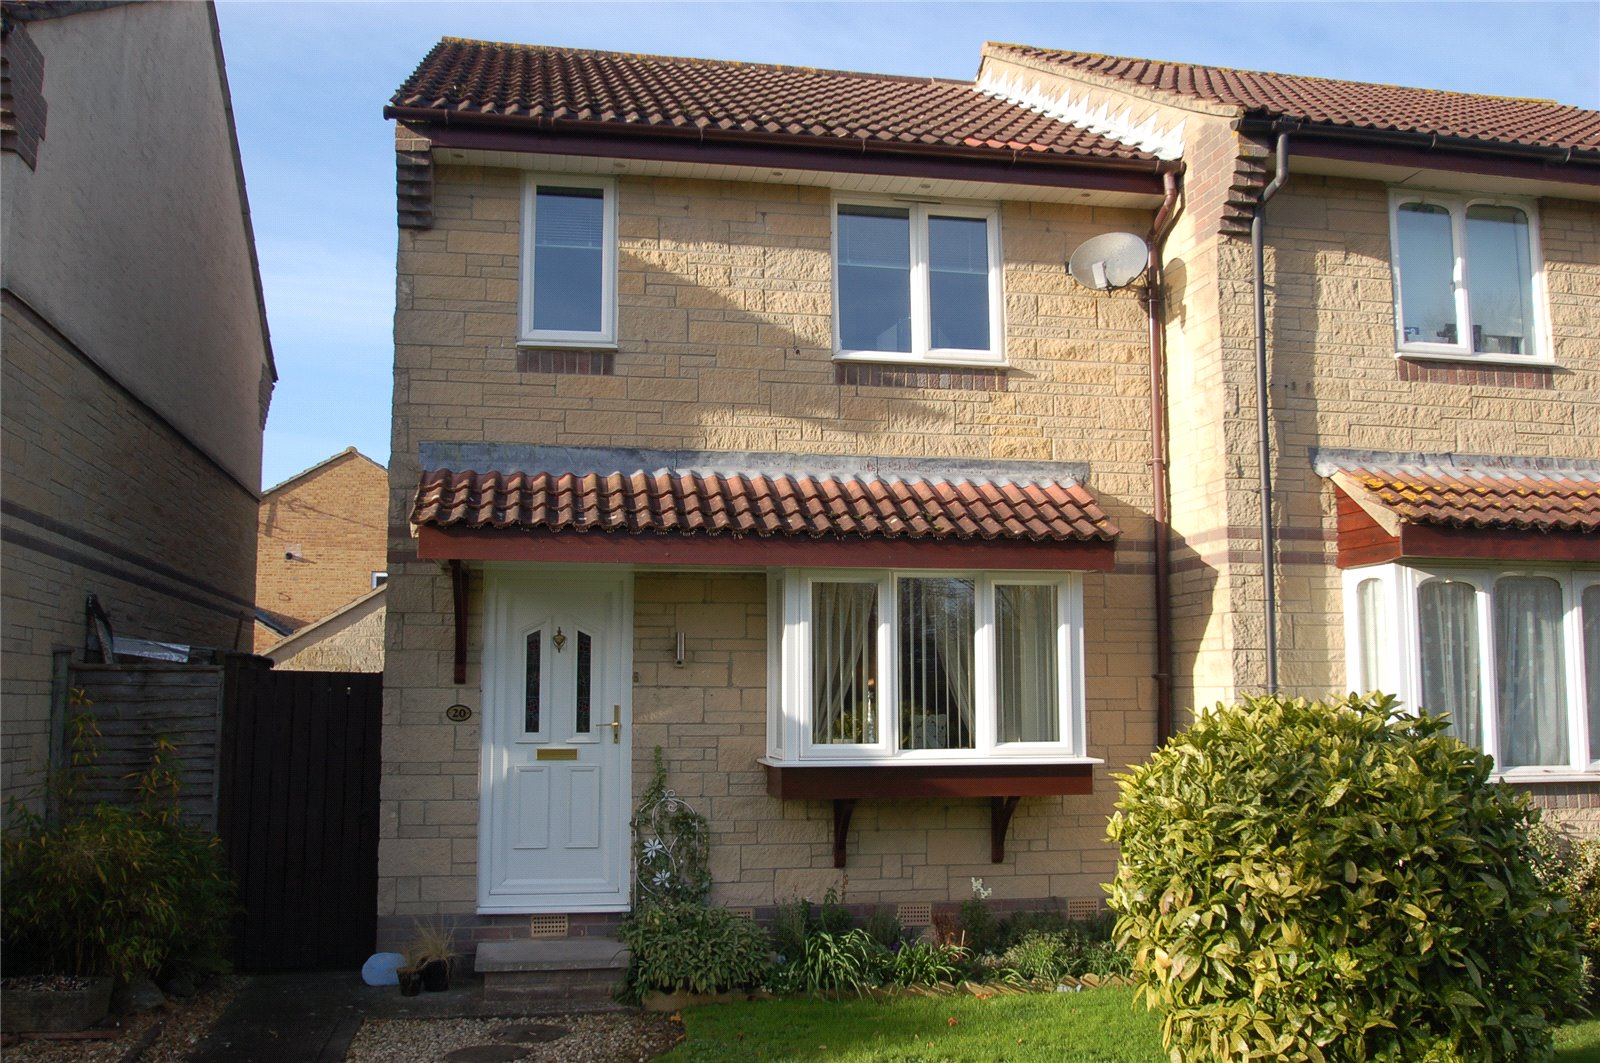 3 Bedrooms Property for sale in Malvern Close Bridgwater Somerset TA6